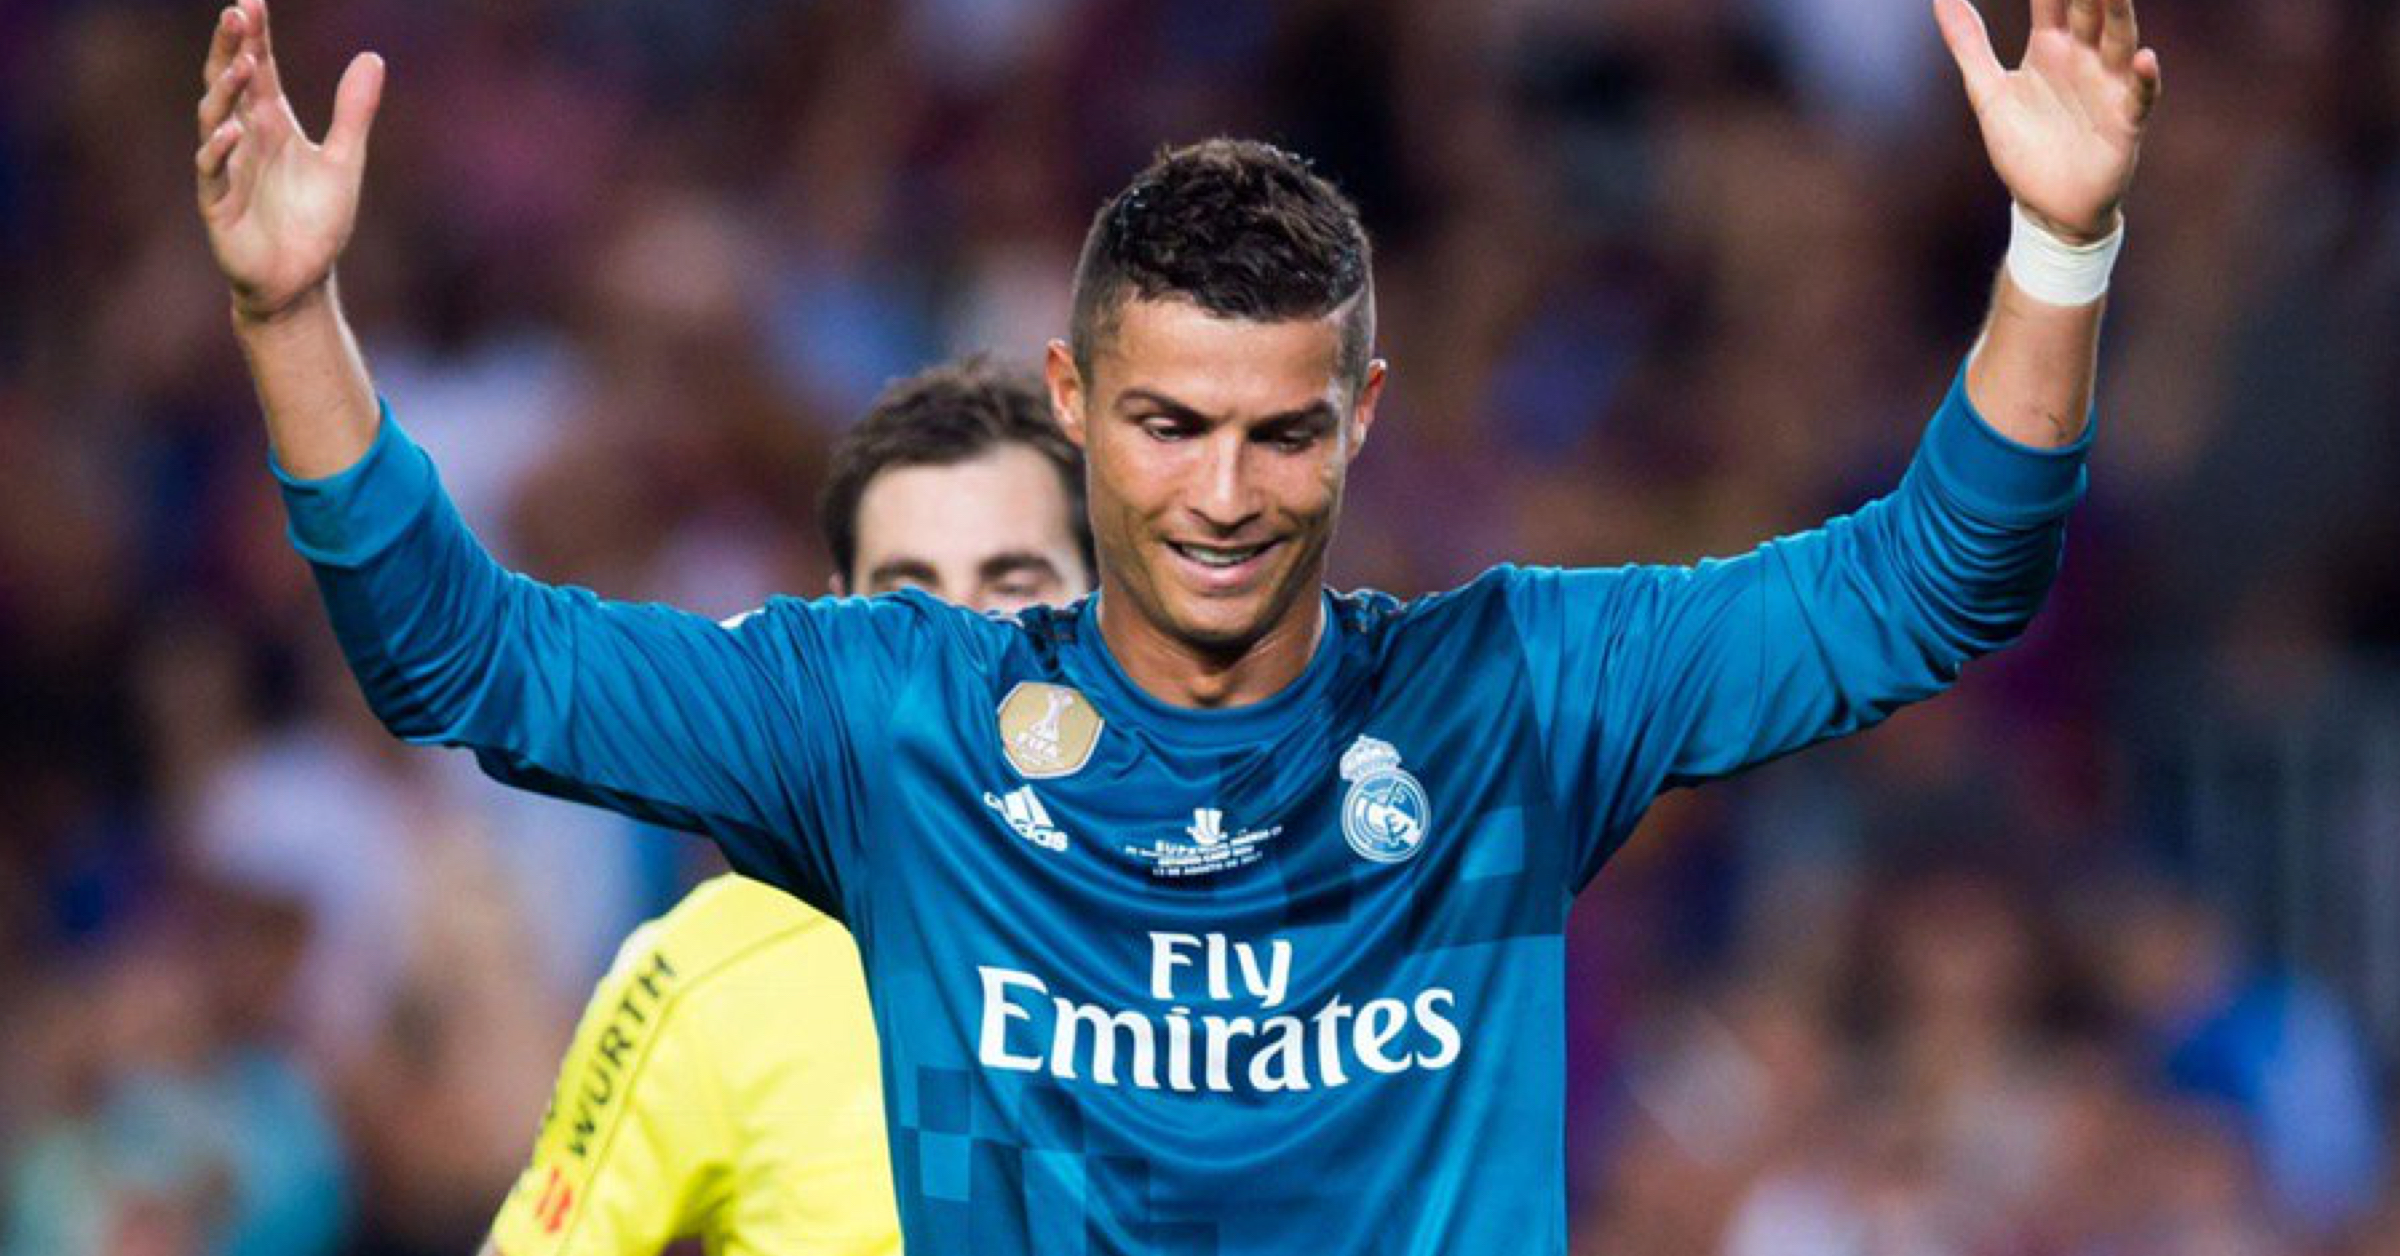 Cristiano Ronaldo Hit With 5 Match Ban After Spanish Super Cup Red Card